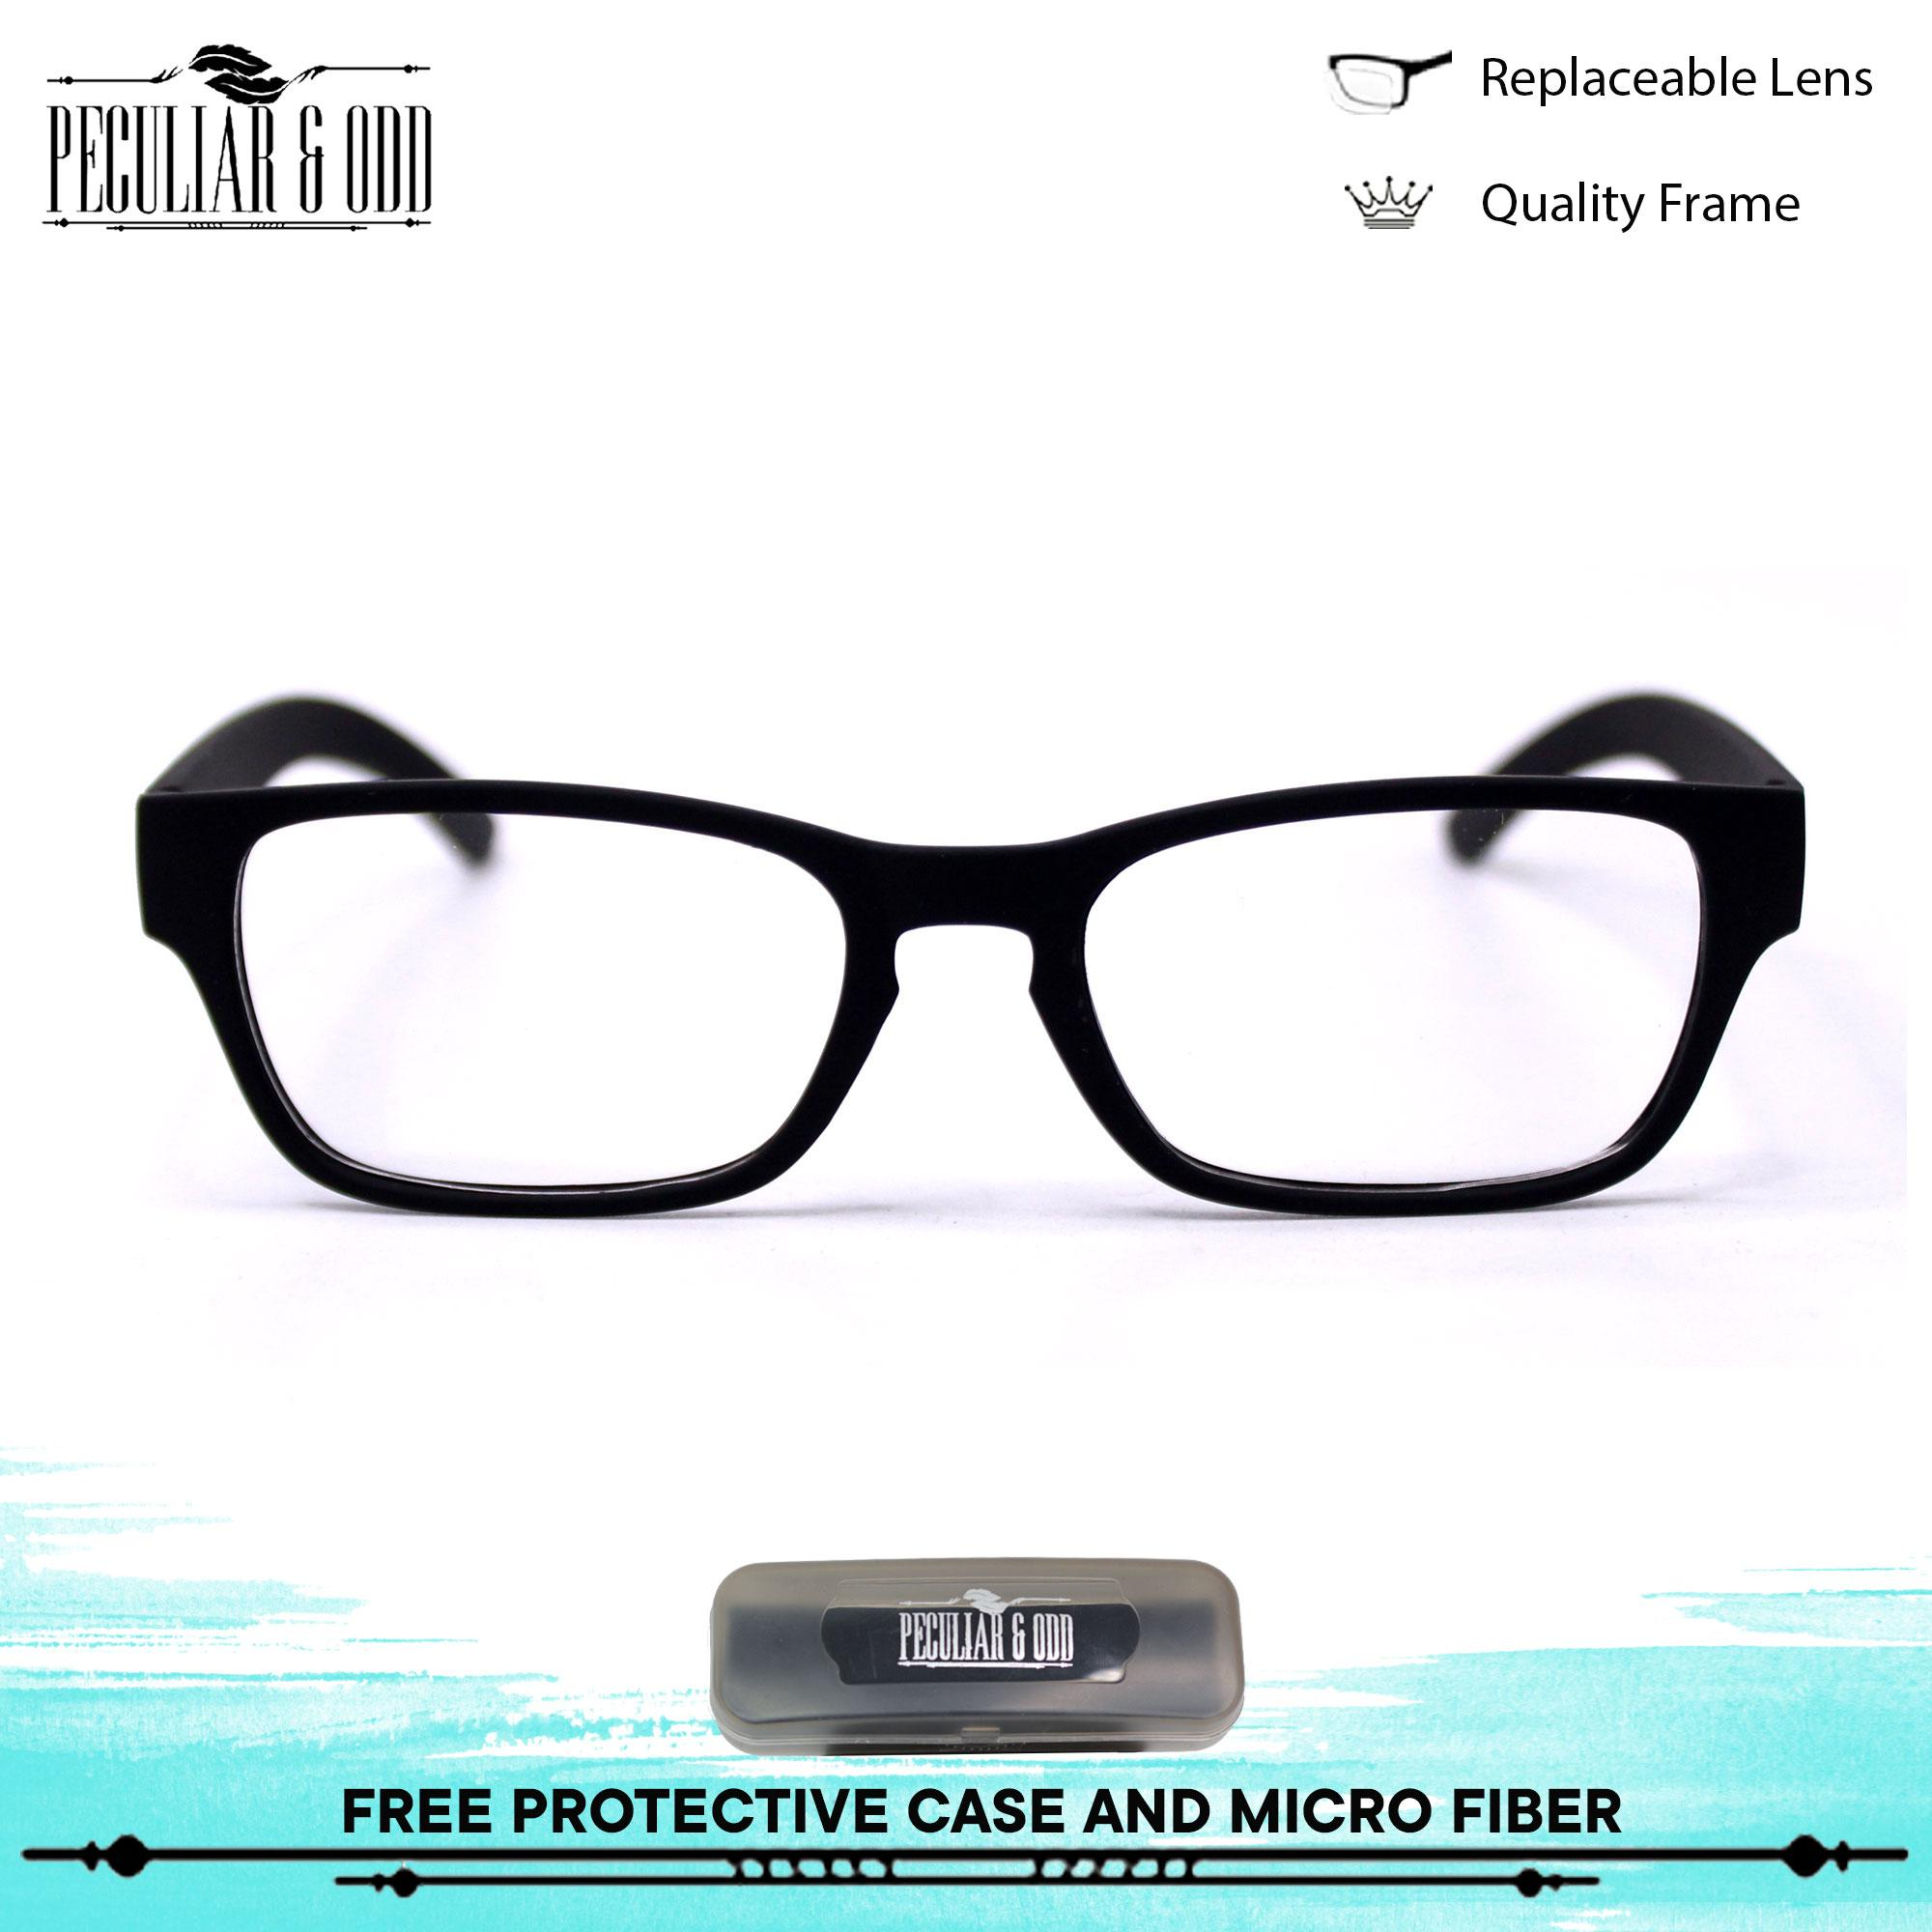 f43f87a9a0 Optical Rectangular Lightweight Eyeglass 2107 BlackClear Replaceable Lenses  Flexible Frame